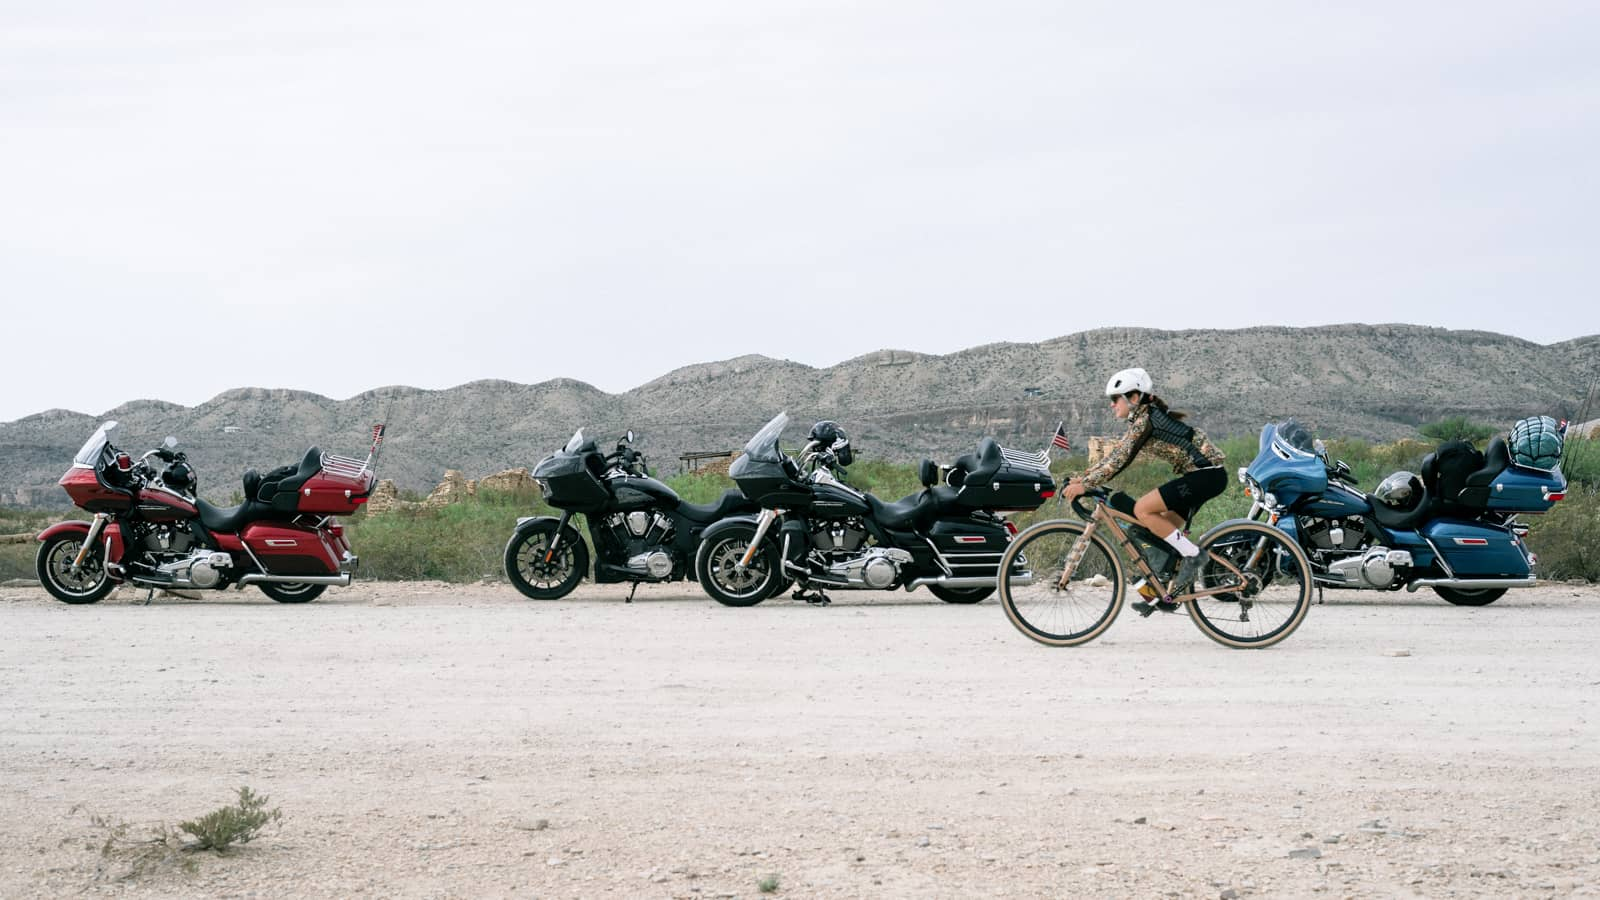 Gravel Riding in the Lone Star State